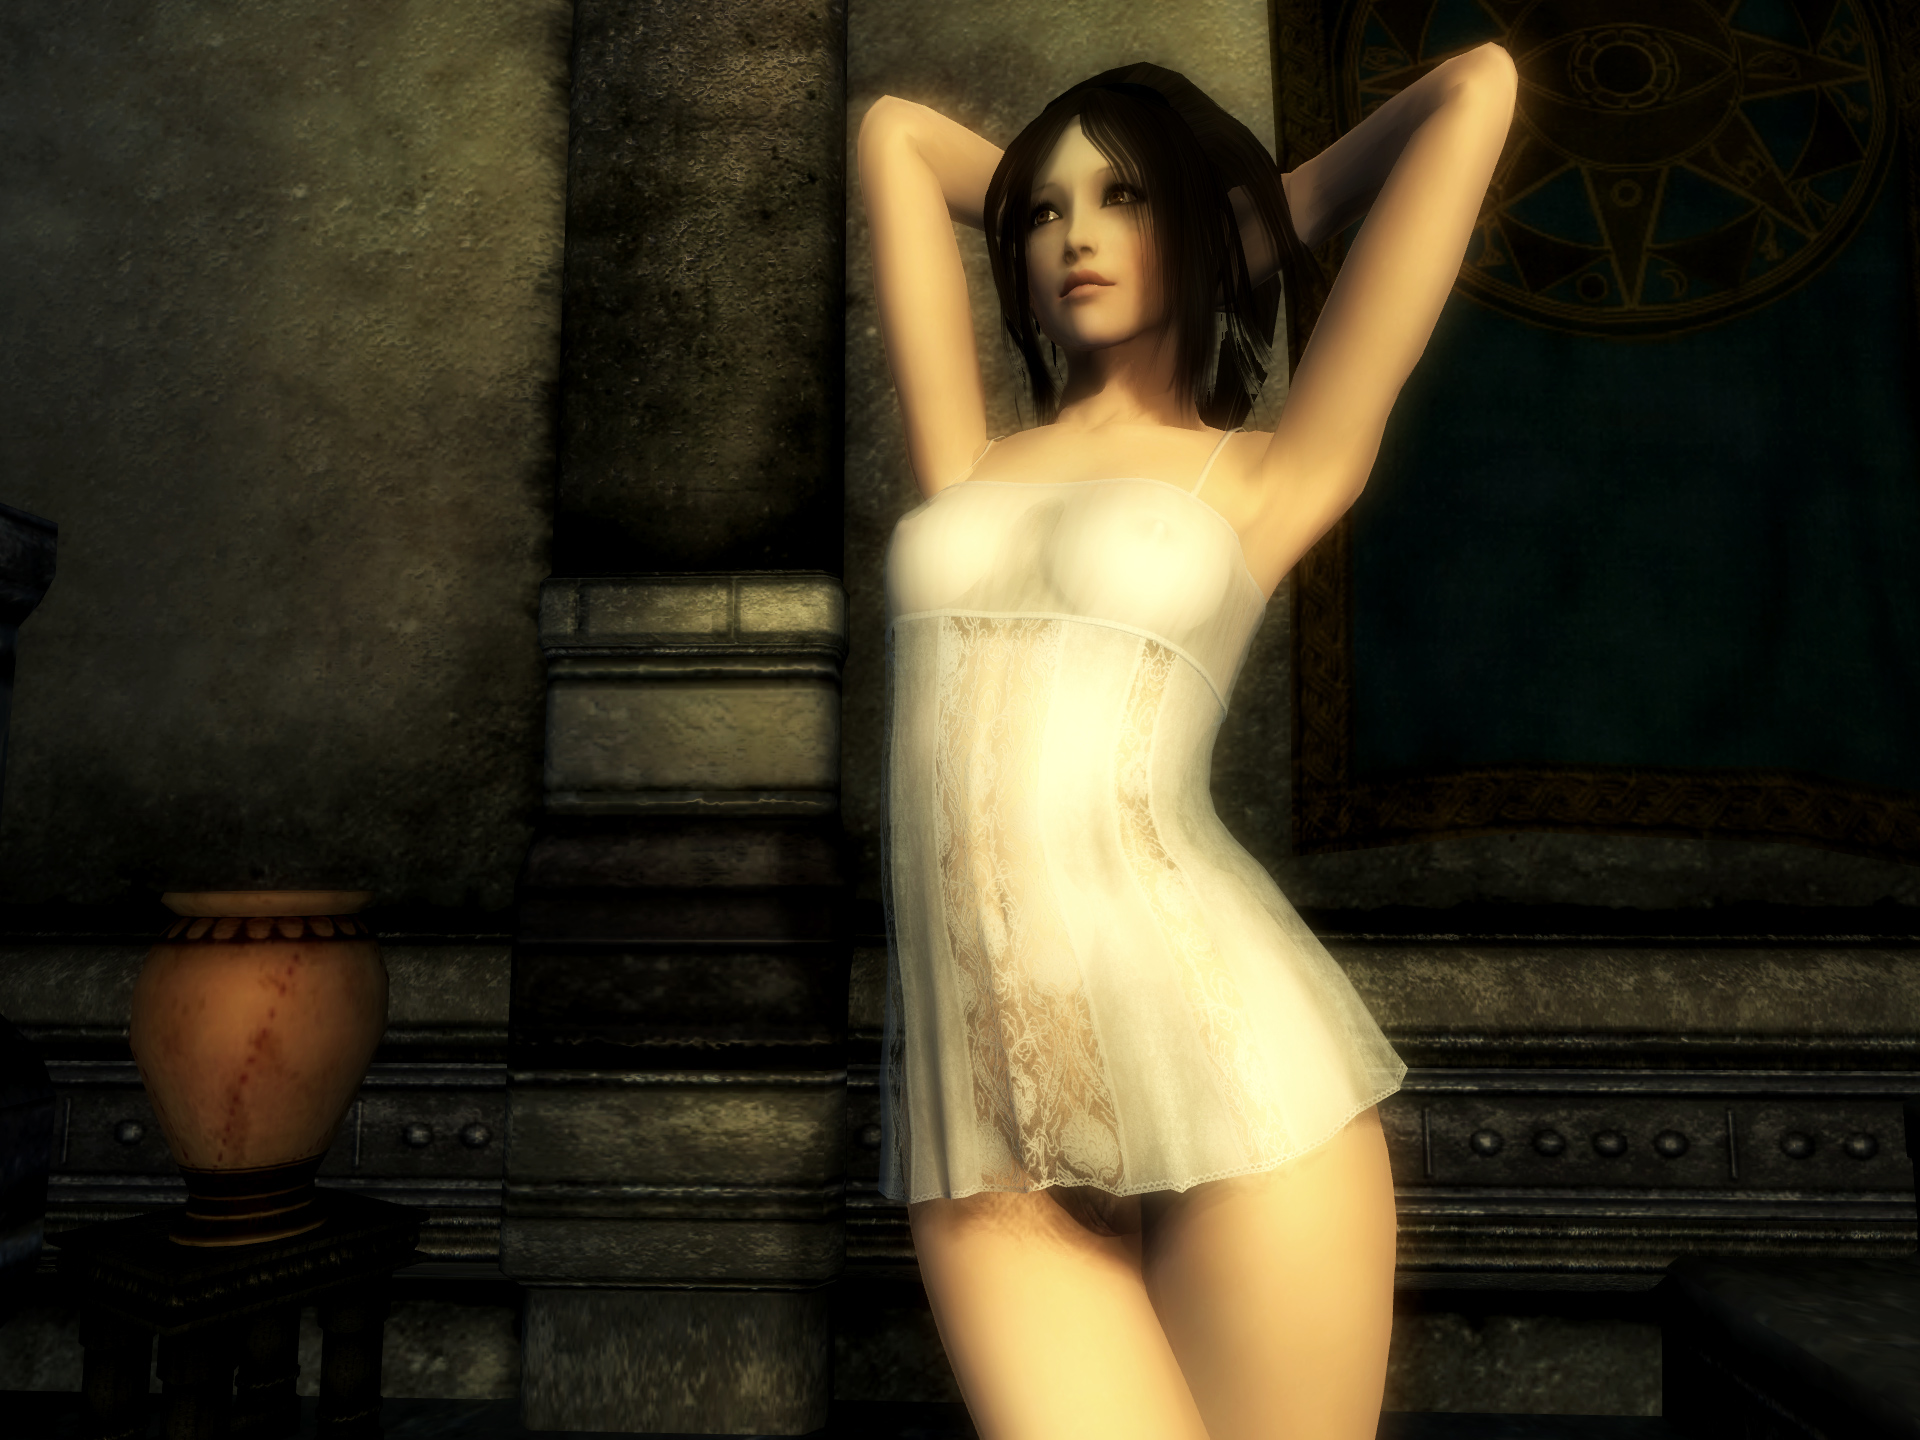 Hellgate london nude mod images sexy picture